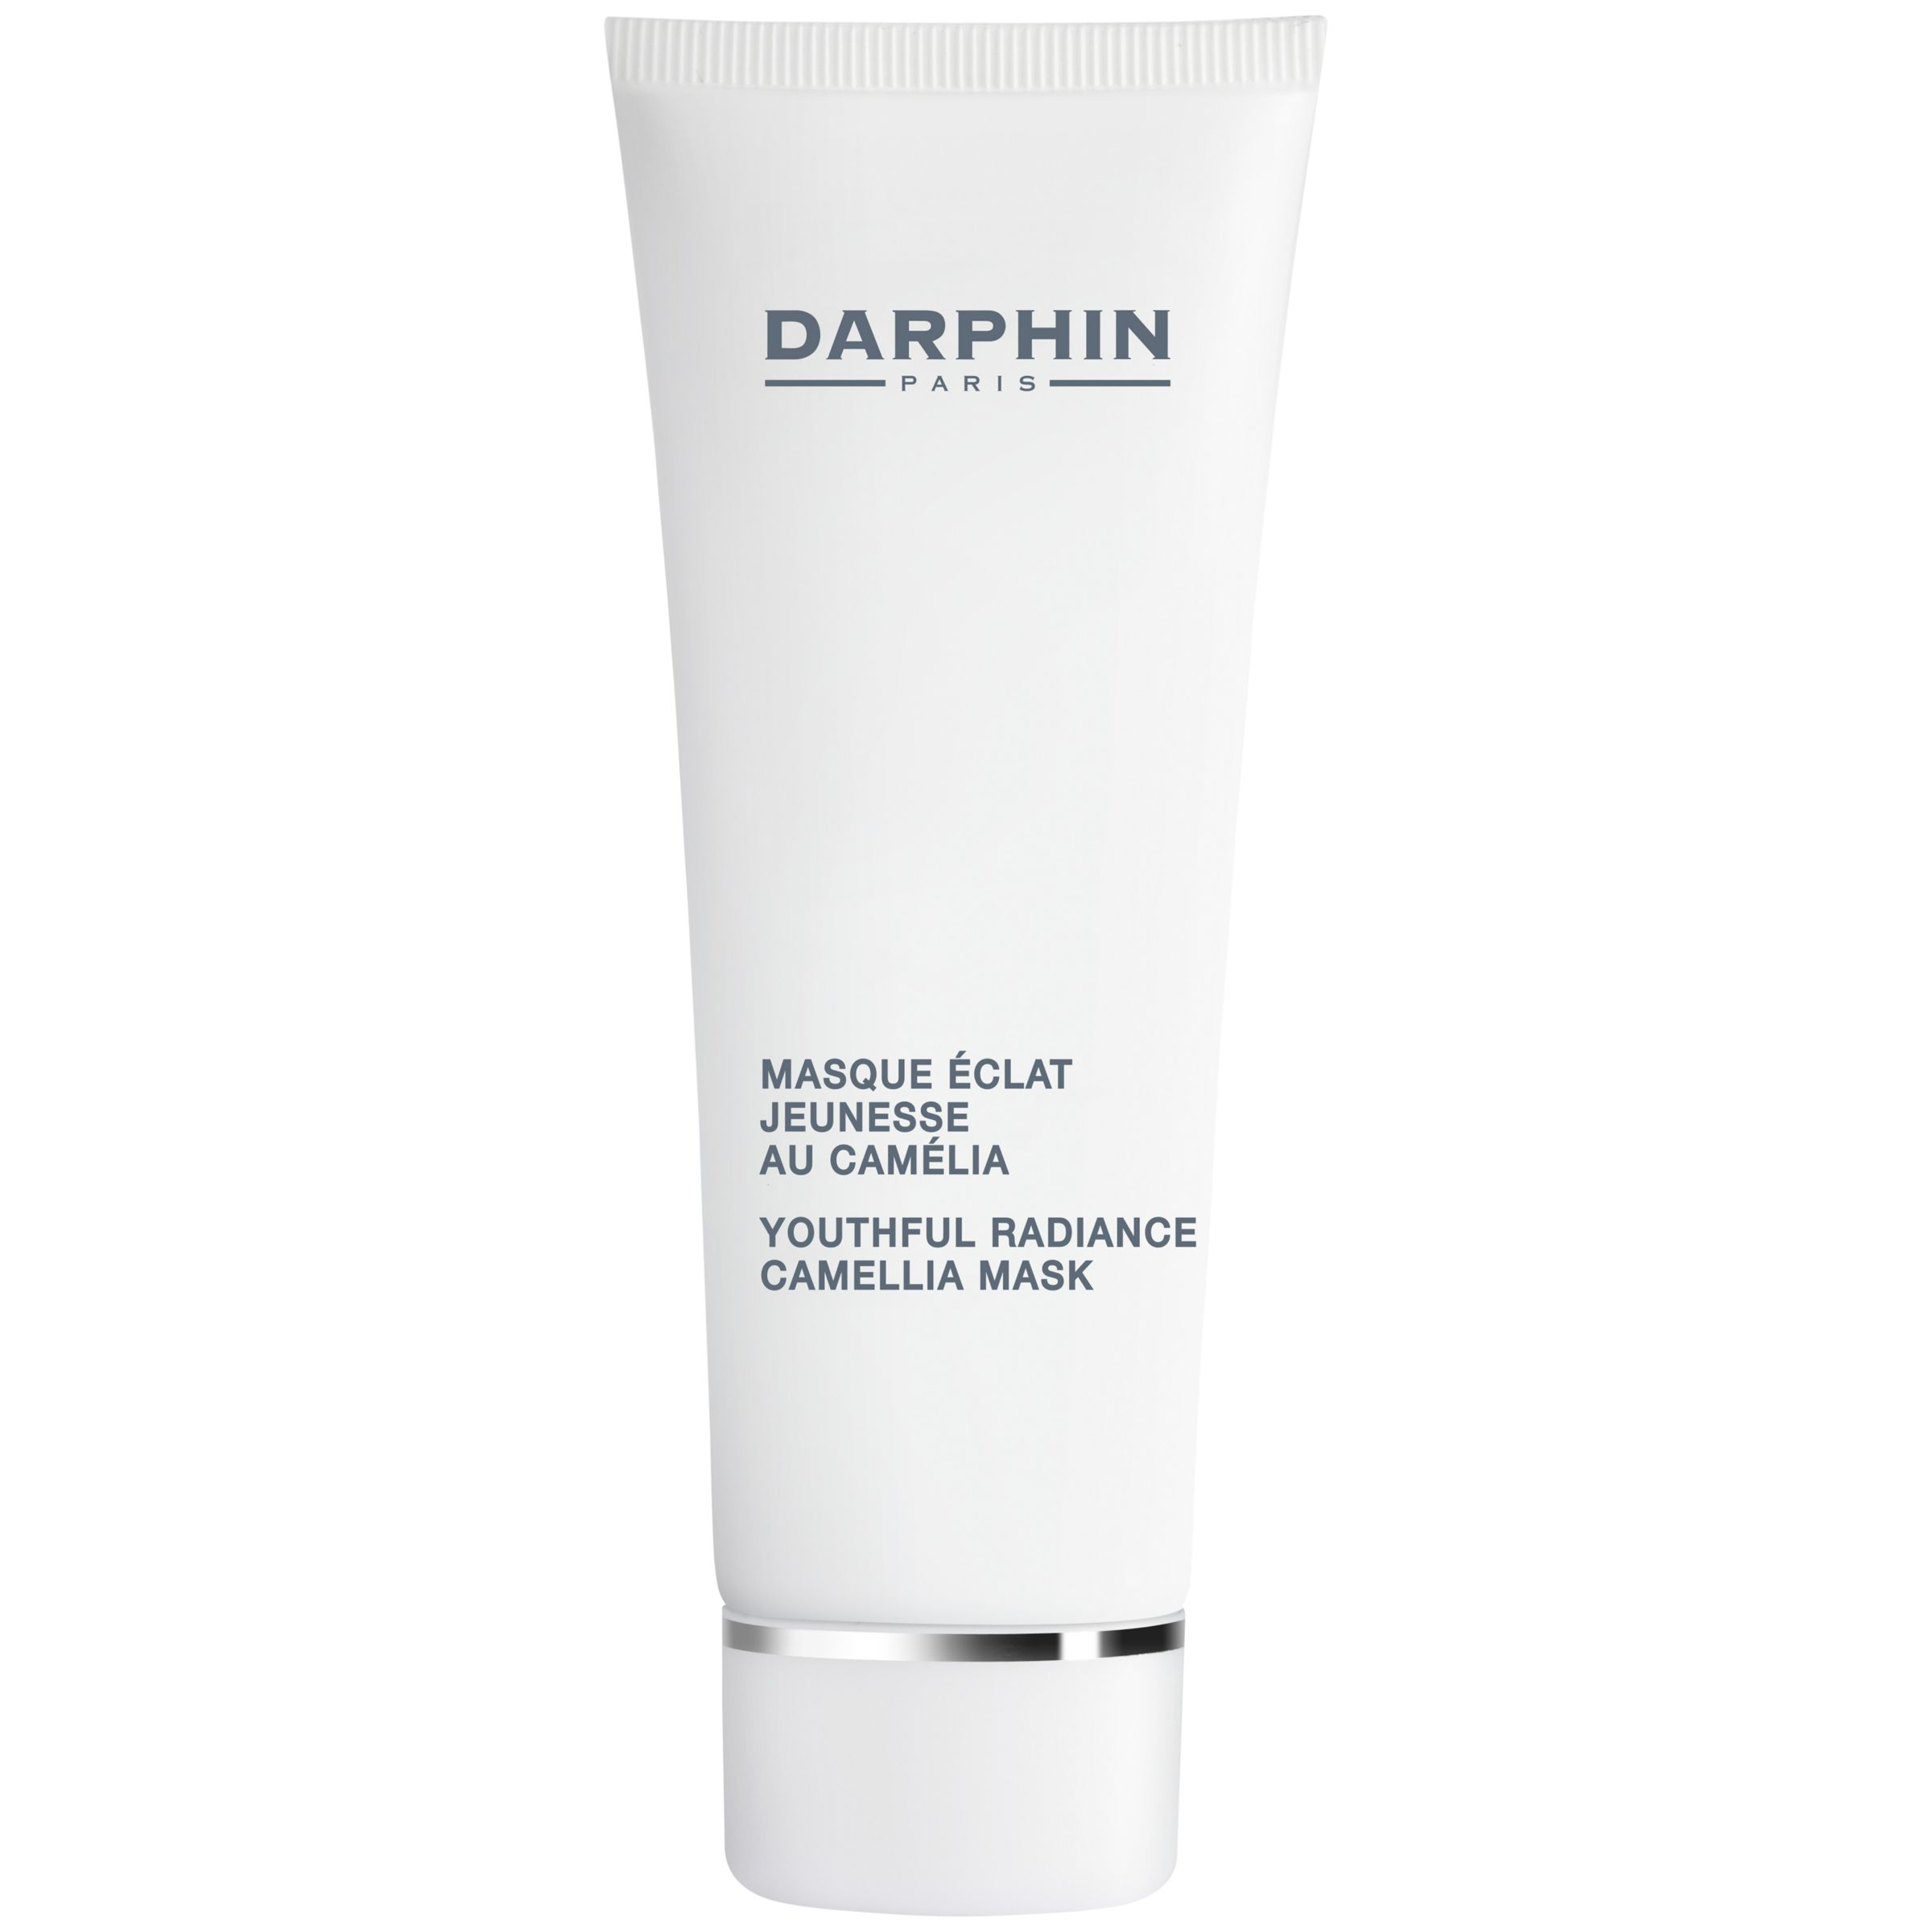 Darphin Darphin Youthful Radiance Camellia Mask, 75ml